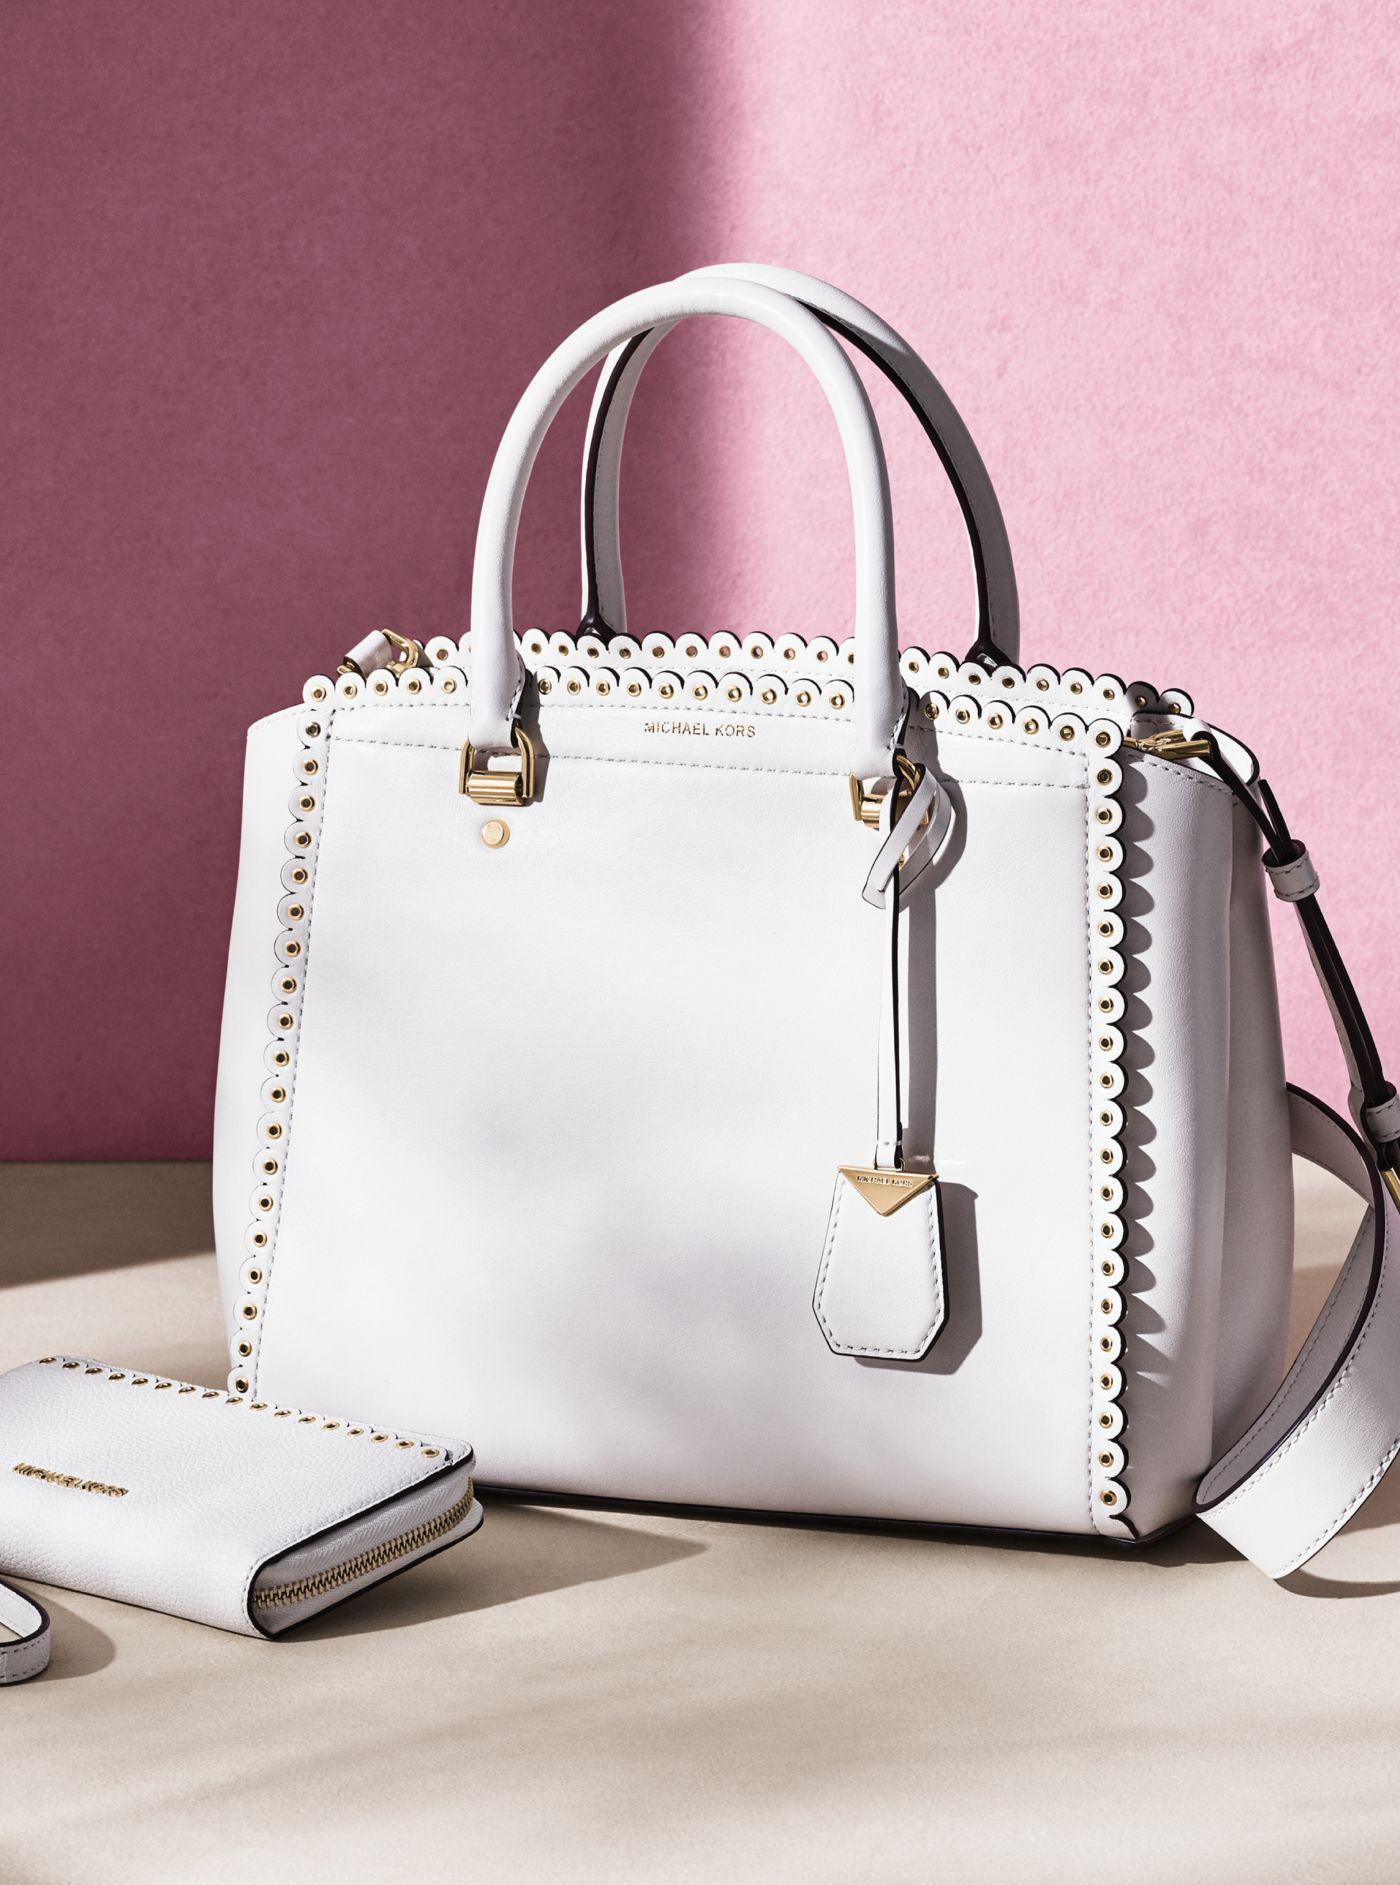 79071e21a929 Lyst - Michael Kors Benning Large Scalloped Leather Satchel in White